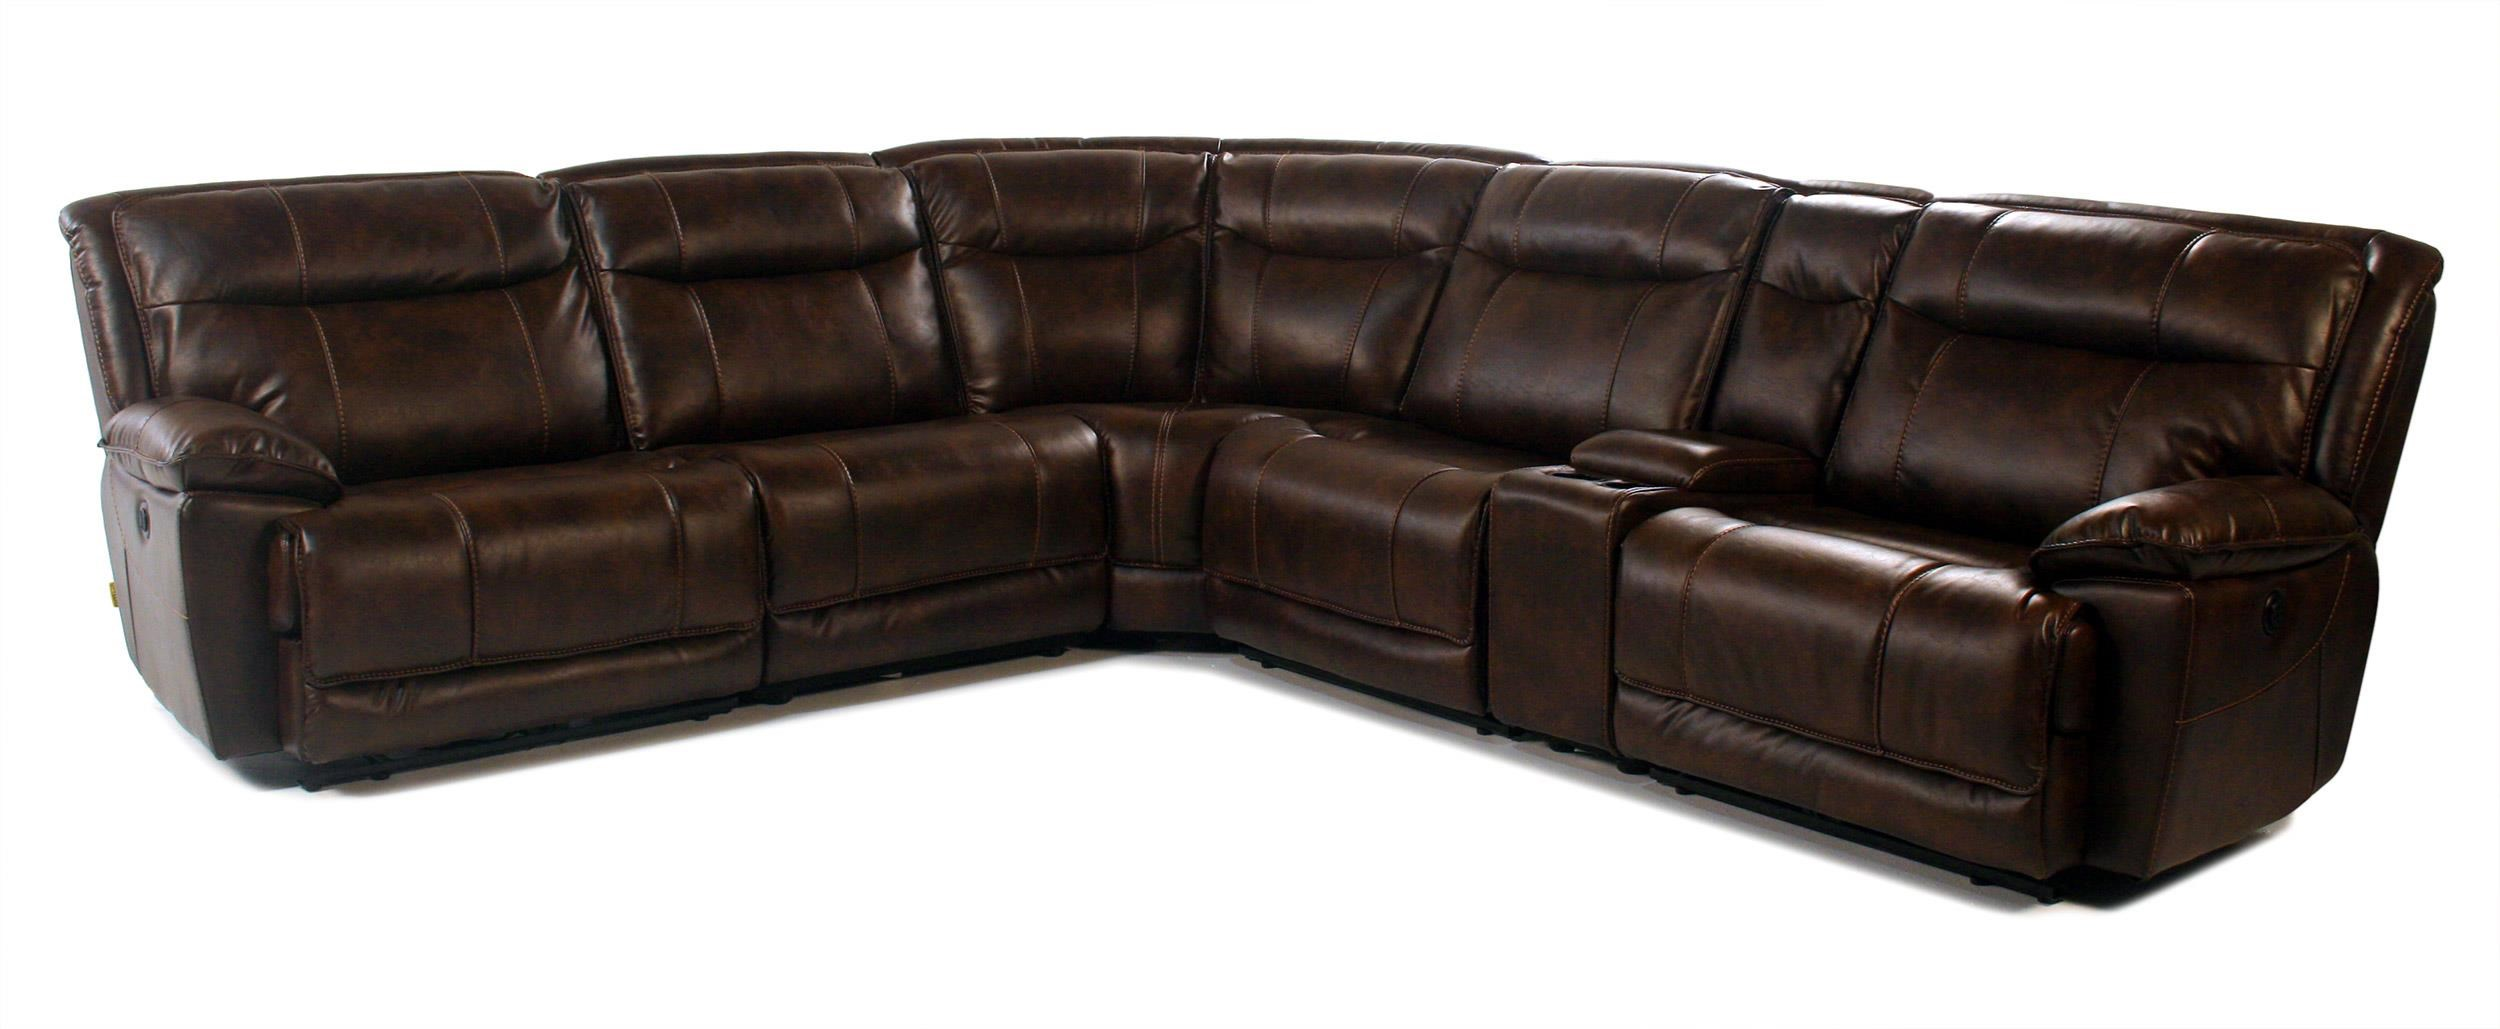 Madison Manor Mustang 6PC Power Reclining Sectional - Item Number: 9918-6PC-PRC